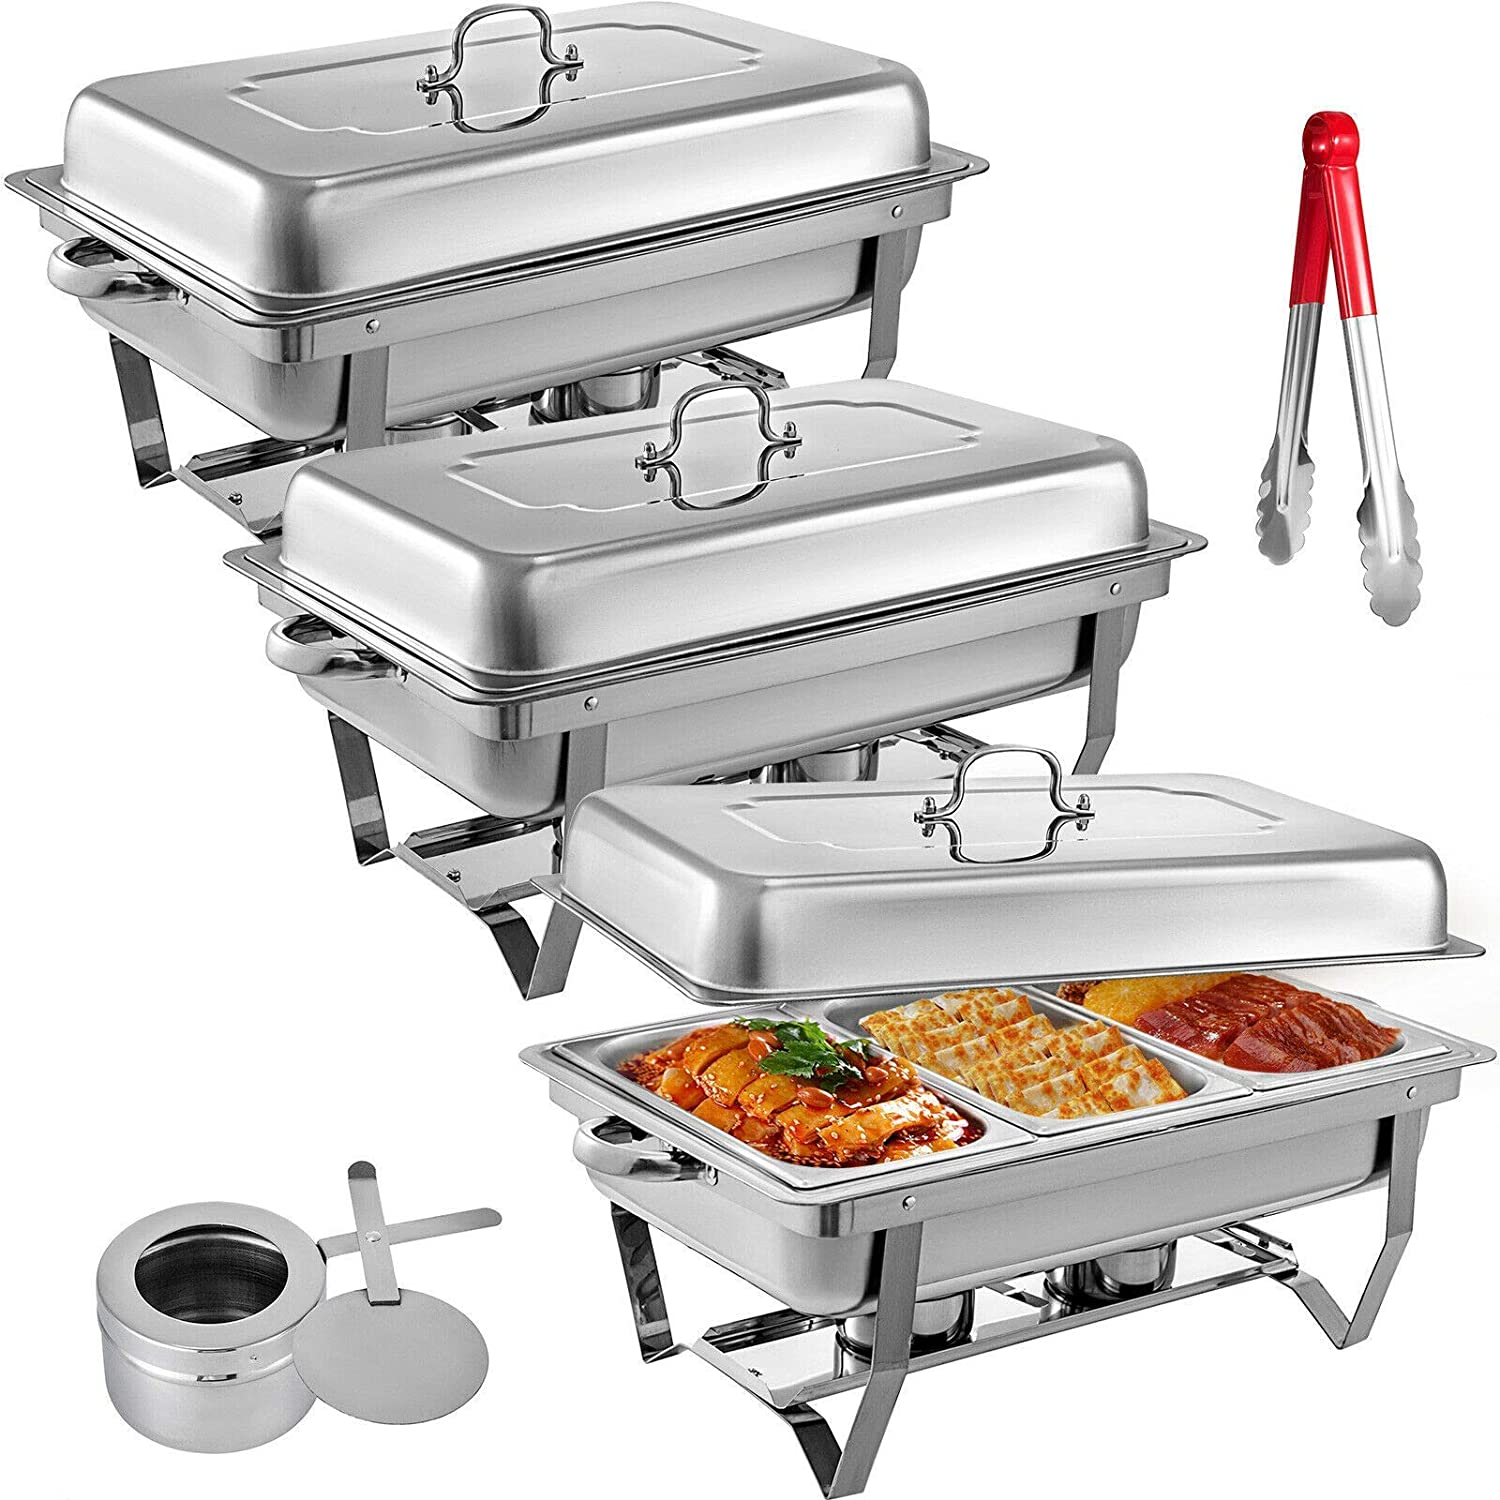 ZTBXQ Home Appliances Kitchen Tools 3 Packs Stainless Steel Chafing Dishes 3 1 in 3rd Size Pans 8 Quart Rectangular Chafer Complete Set Buffet Tray Food Warmer